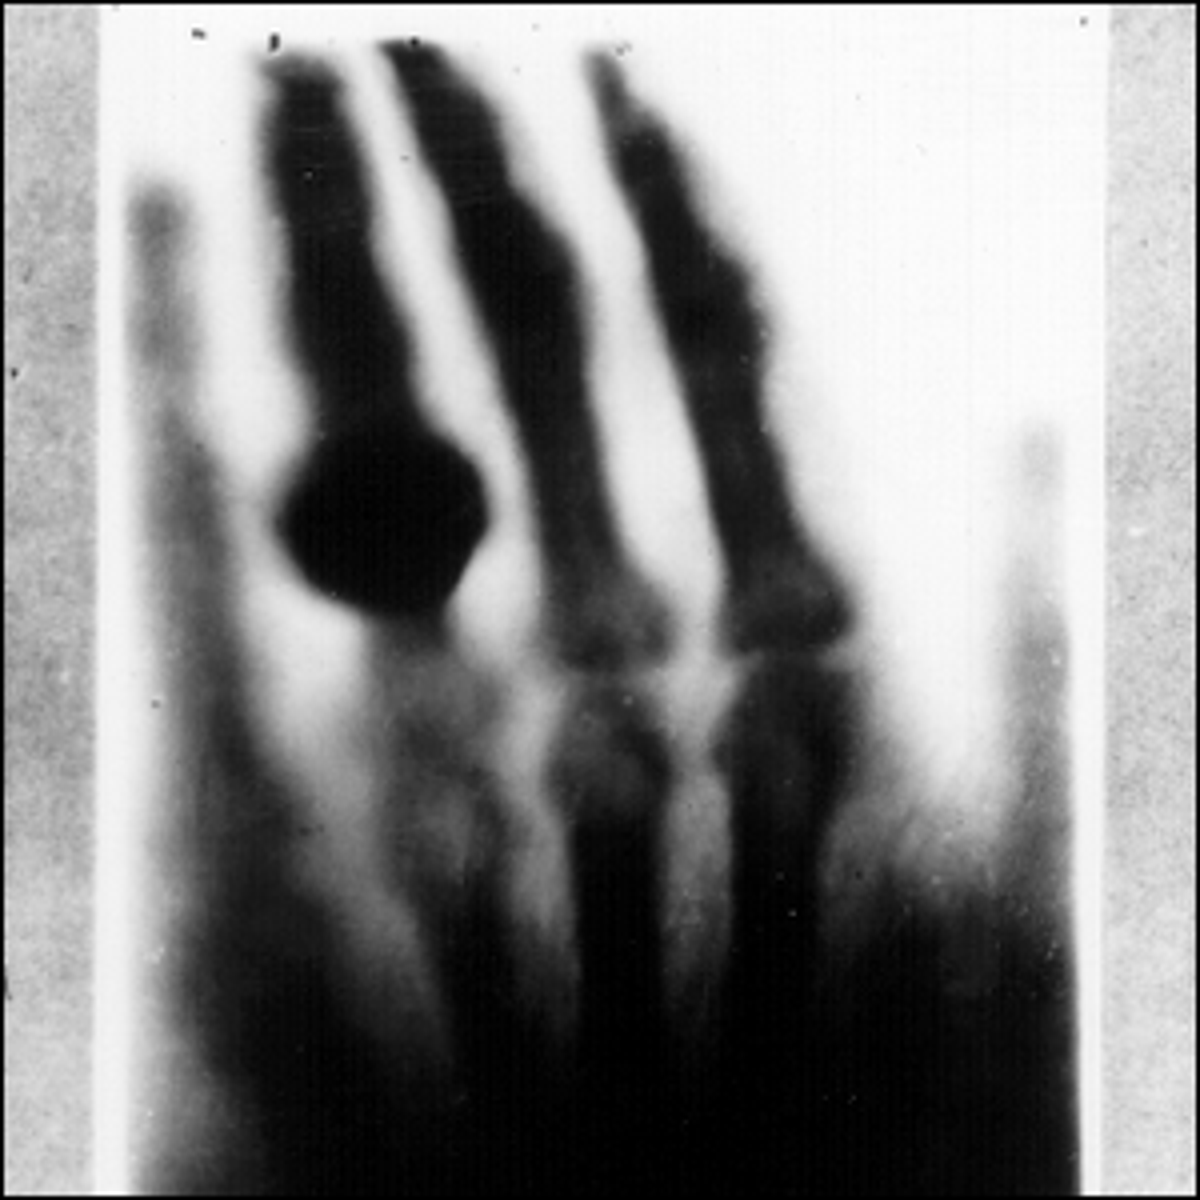 A print of one of the first X-rays by Wilhelm Röntgen of the left hand of his wife Anna Bertha Ludwig.